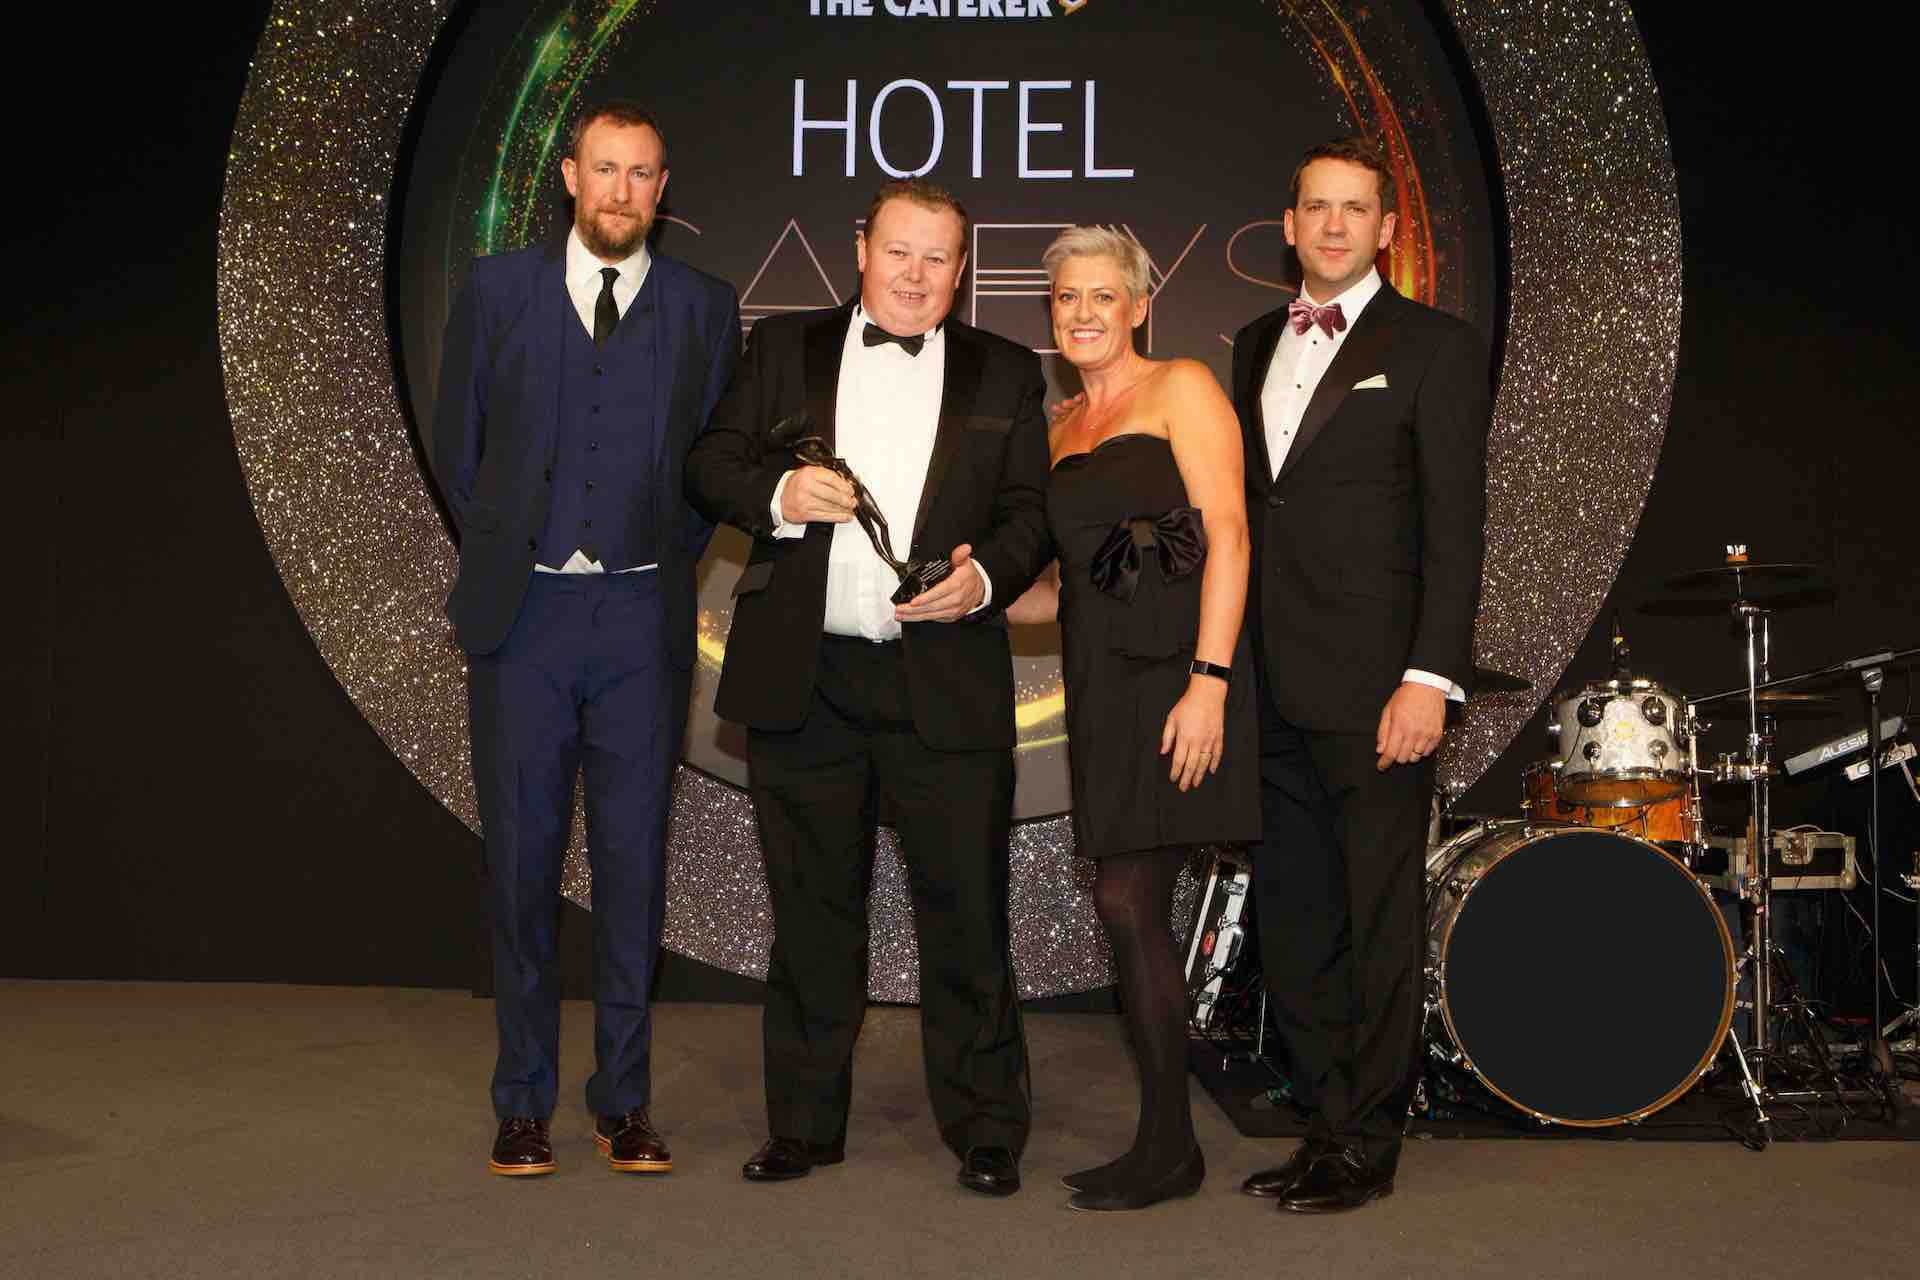 The Belfry's Executive Head Chef wins